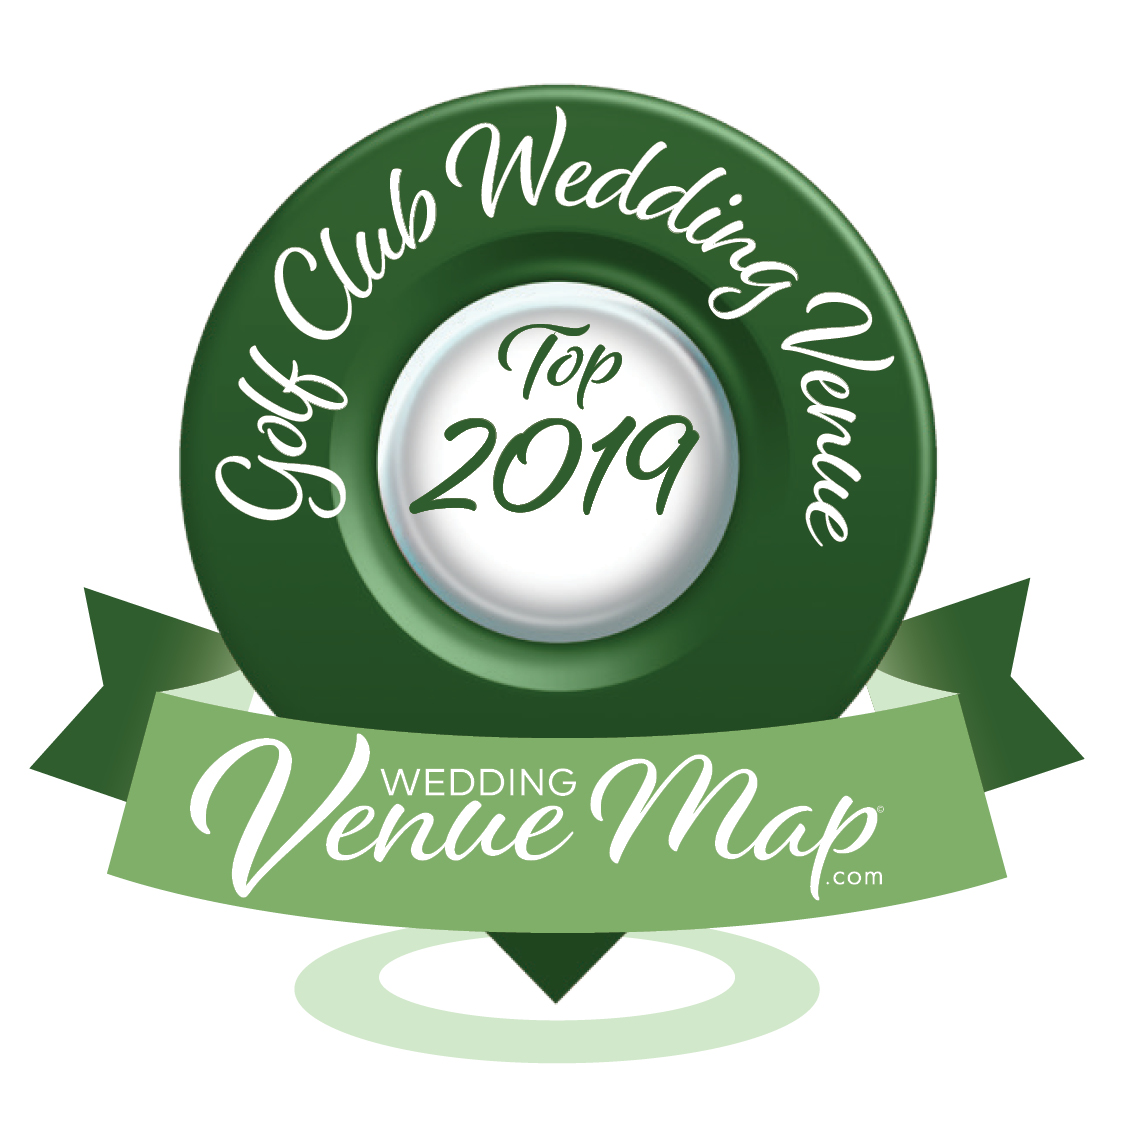 2019 Top Golf Club Wedding Venue Award